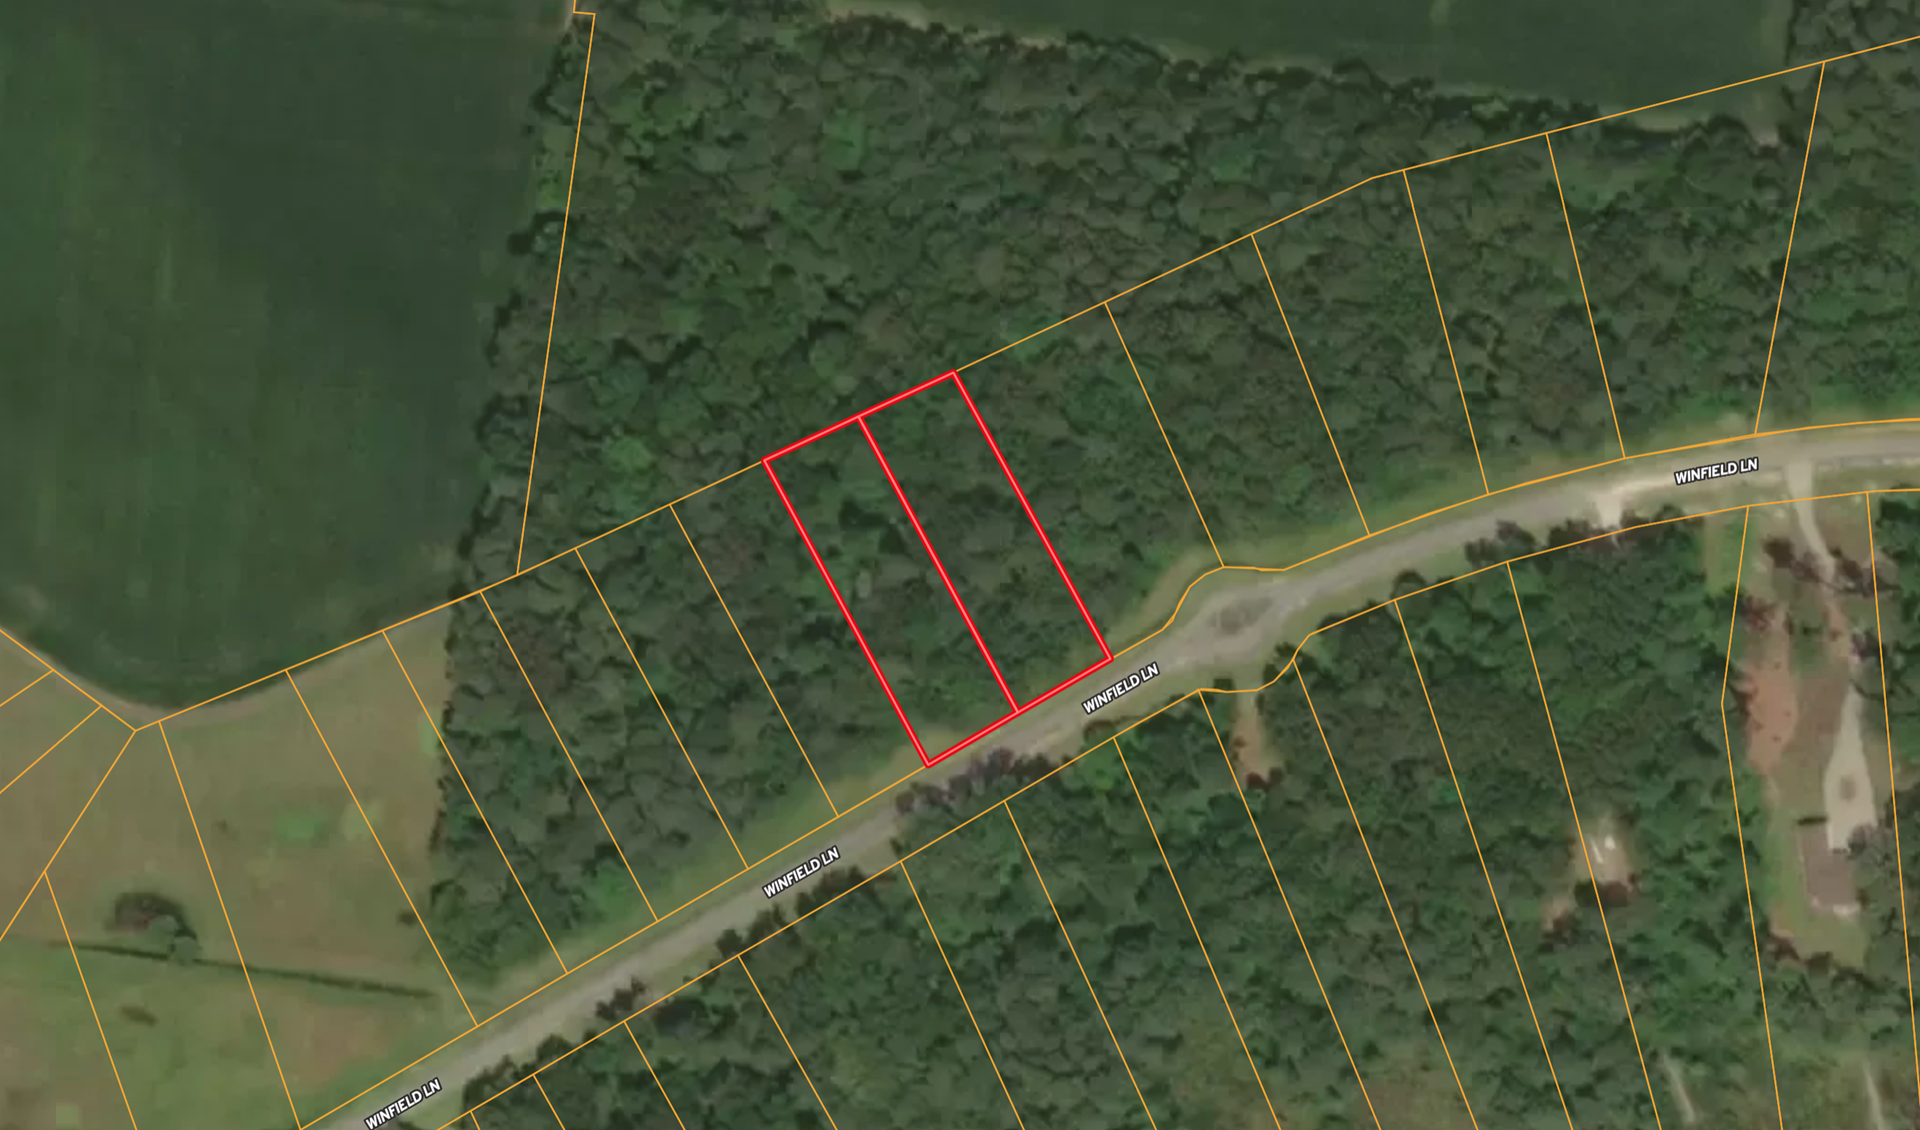 Land for sale in Waterfront community Beaufort County, NC